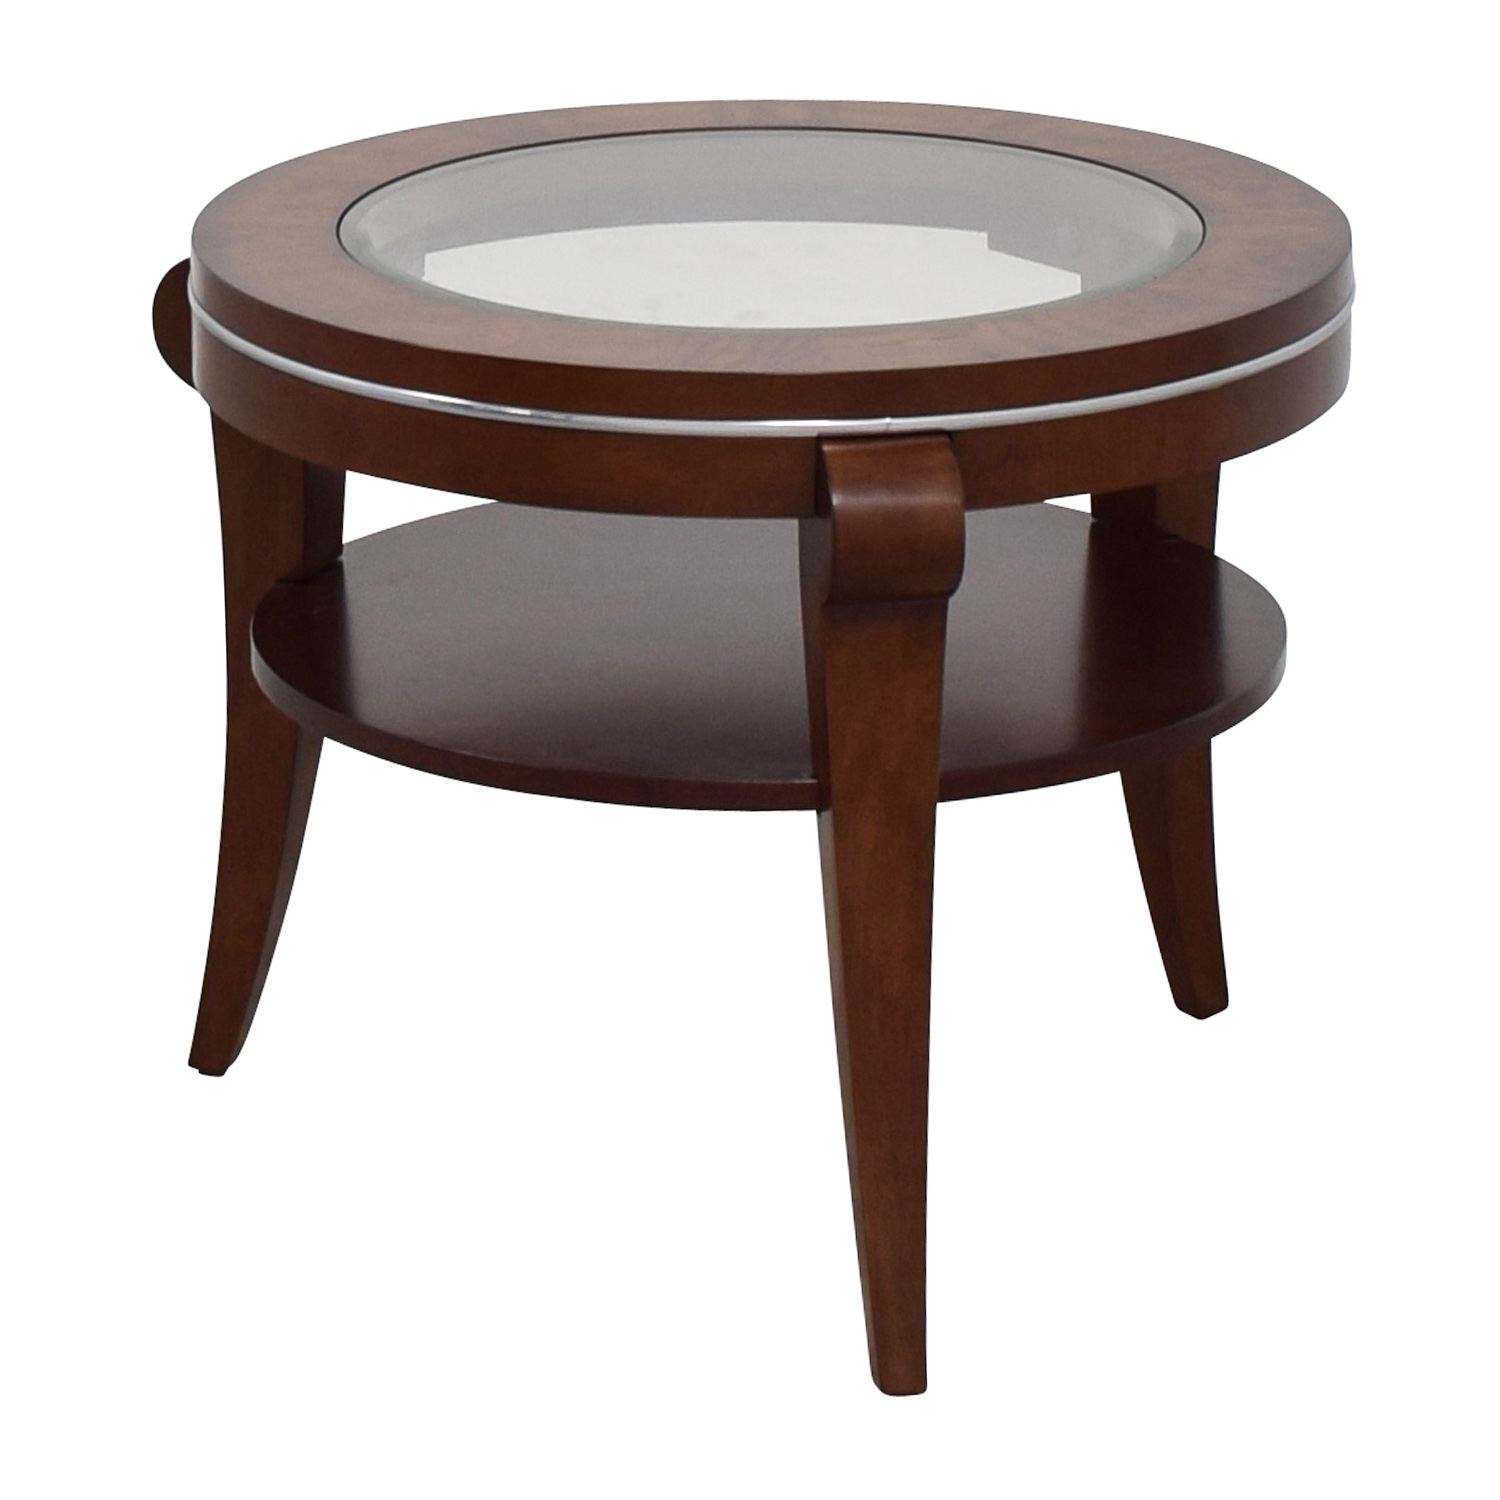 Raymour & Flanigan Round Glass and Wood Side Table Raymour and Flanigan